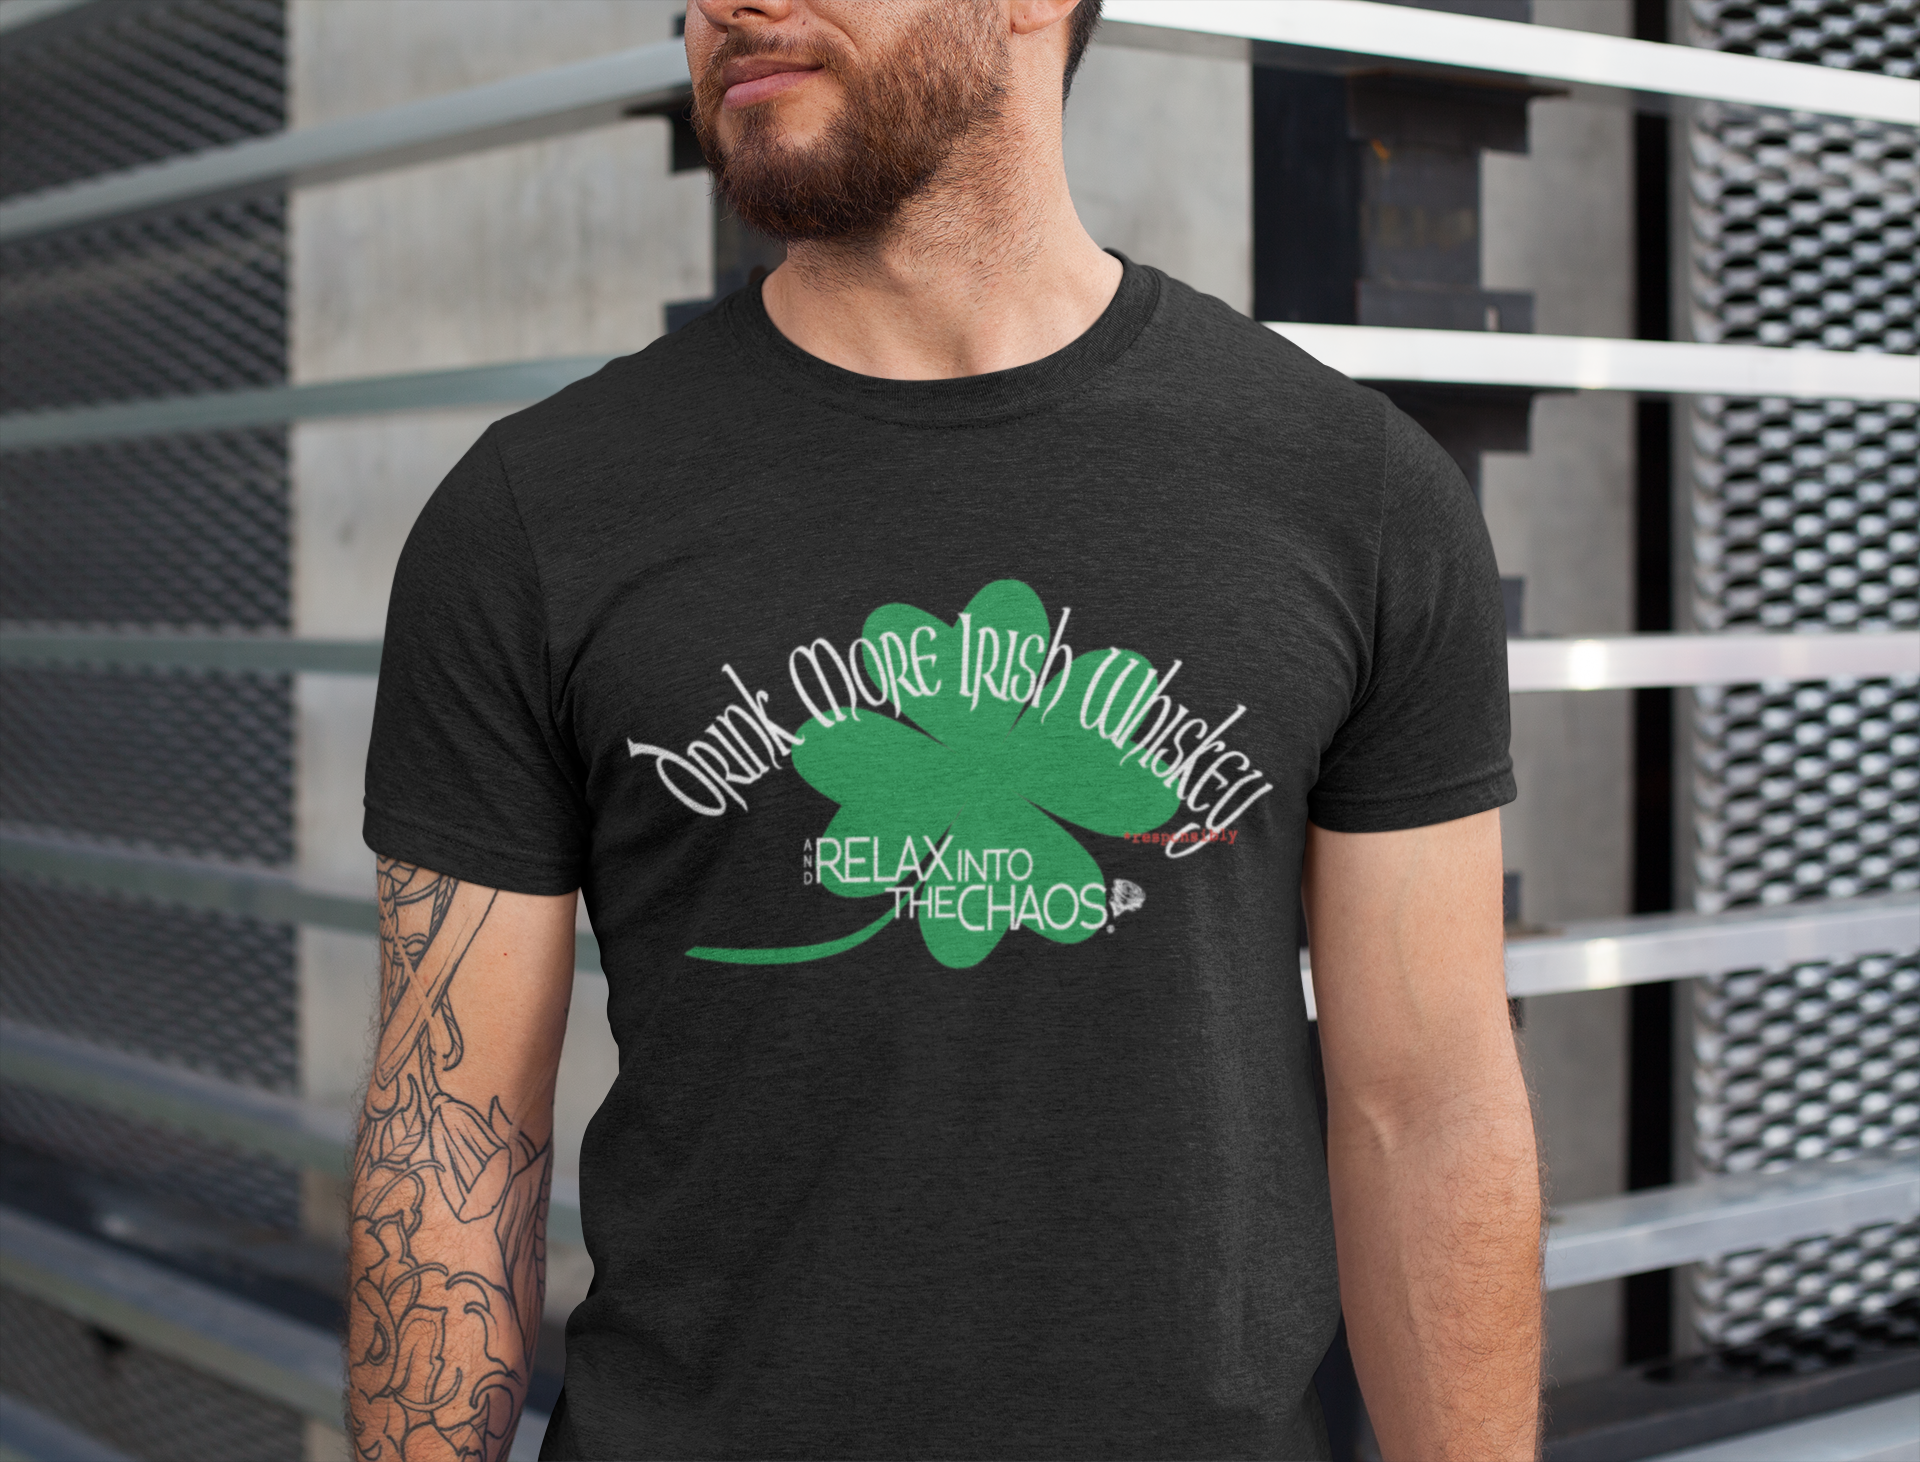 relax into the chaos organic t-shirt on man with-tattoos-on-one-arm